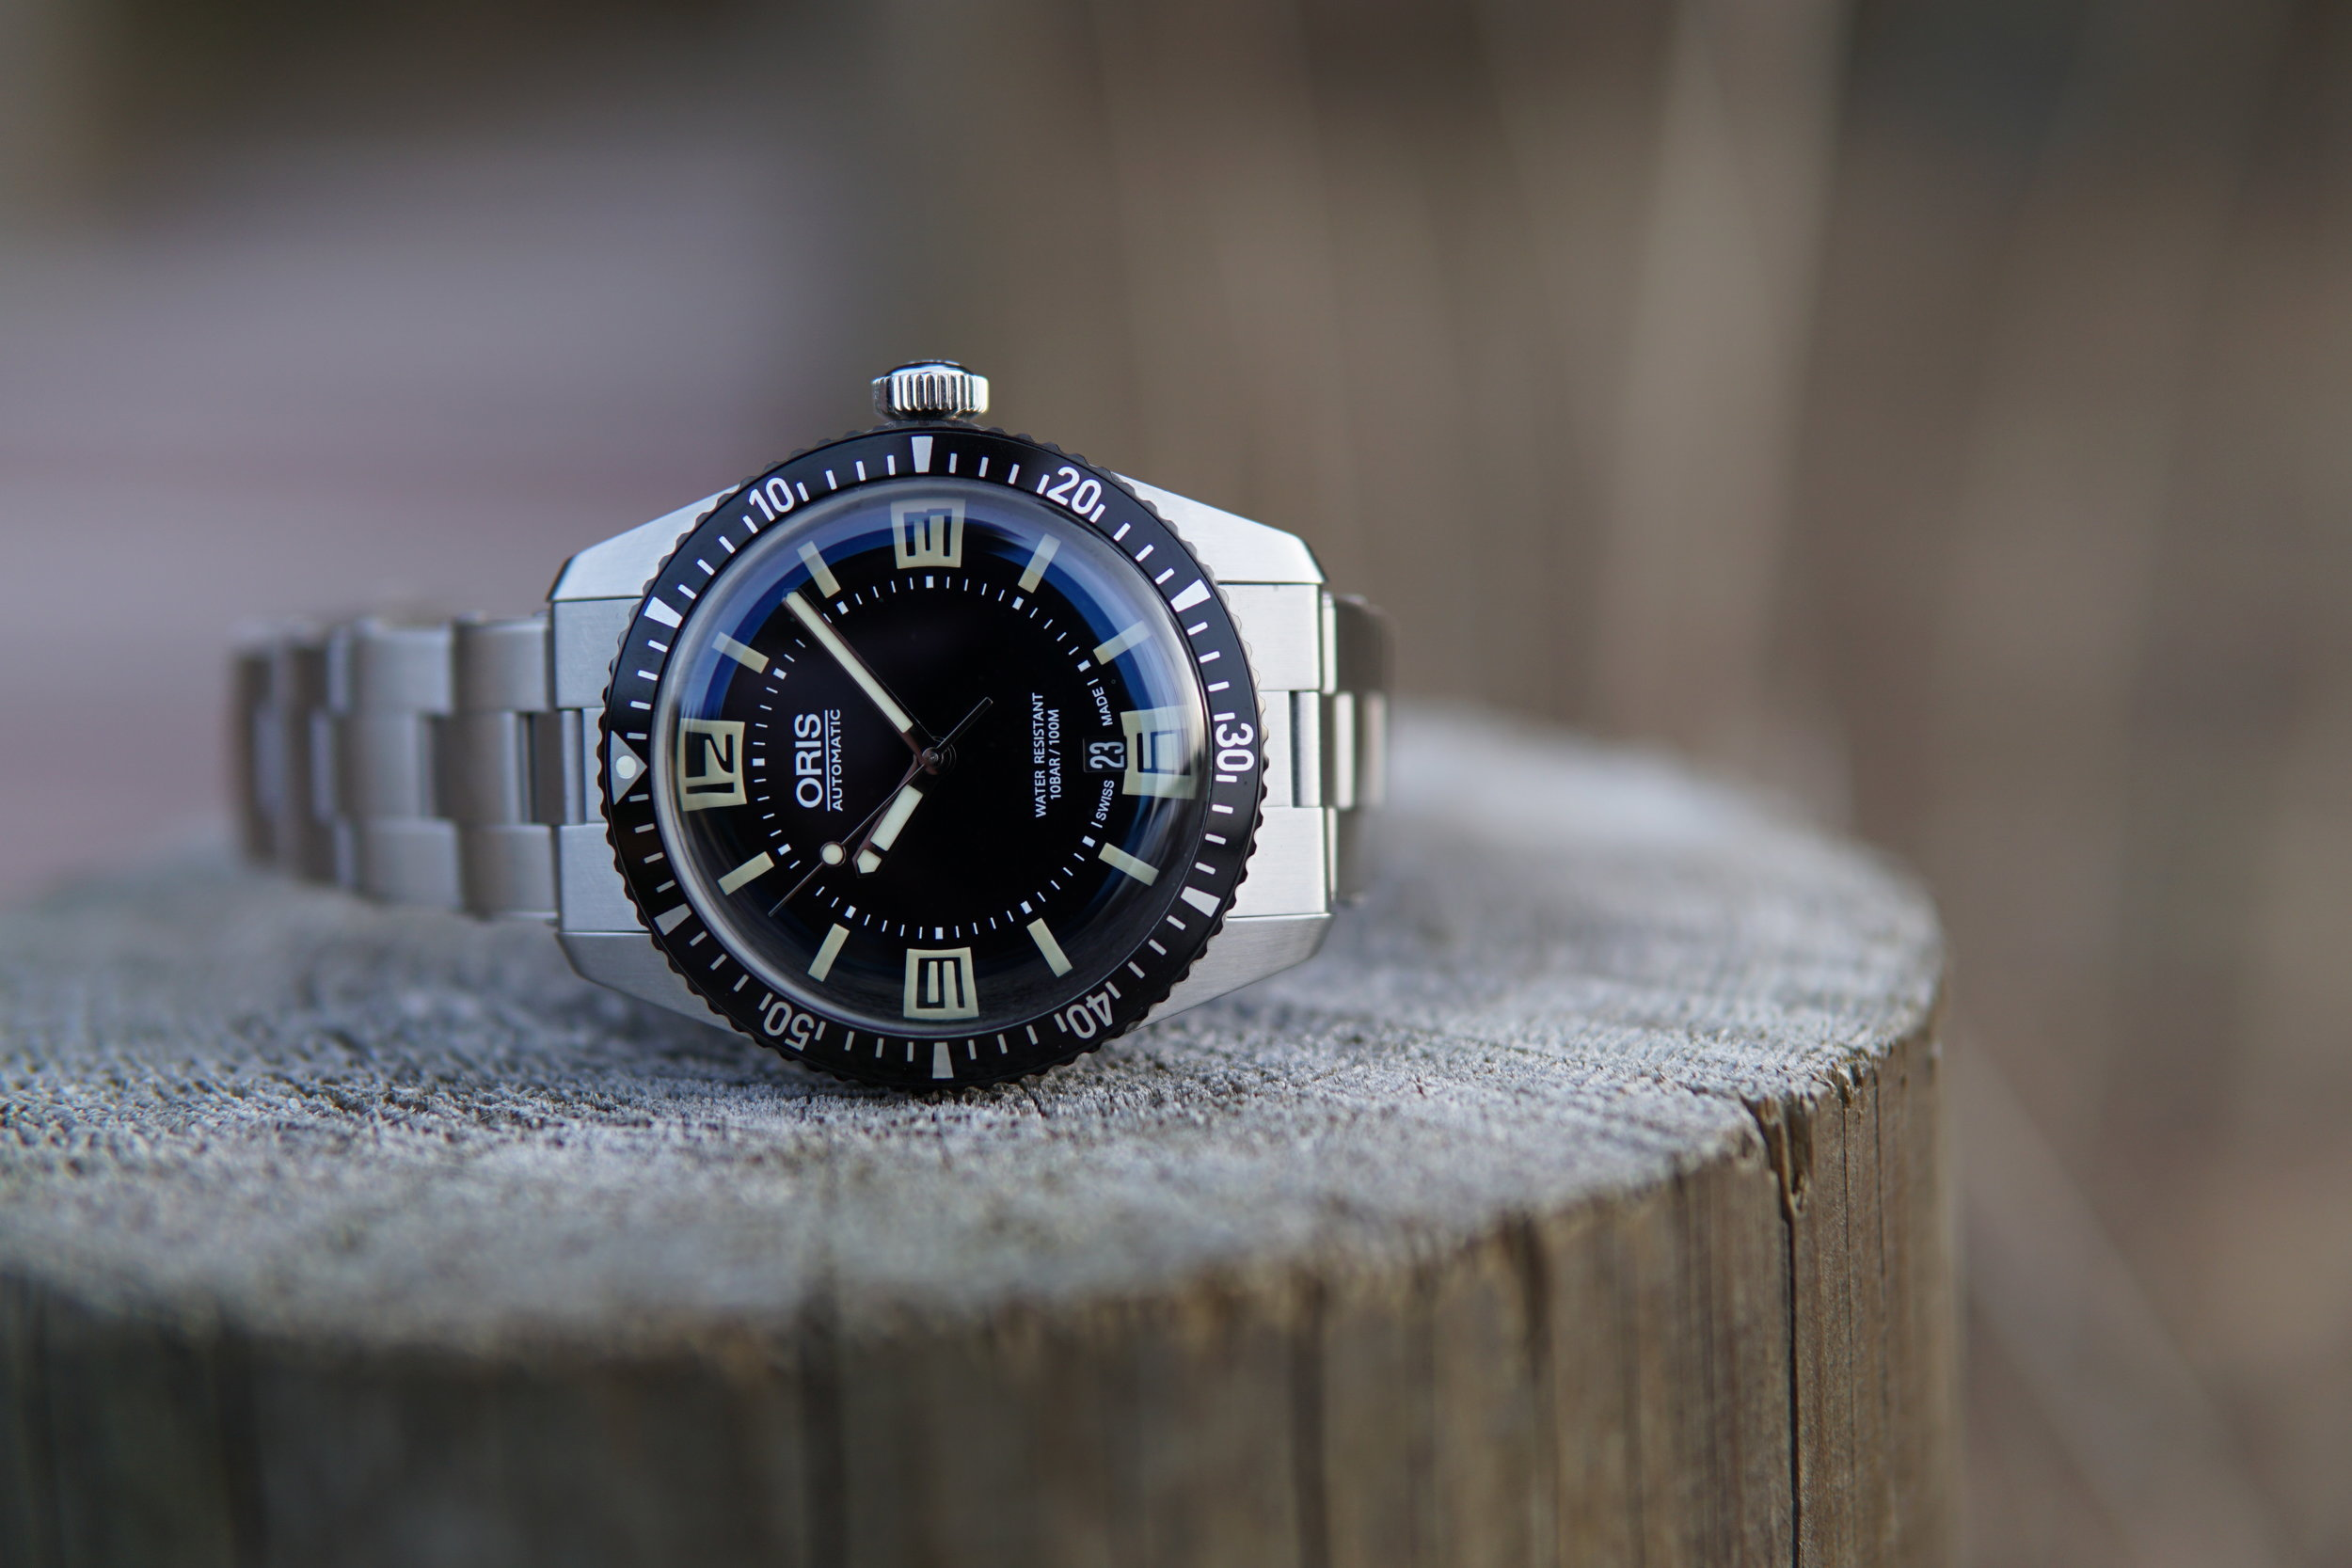 The Oris Divers 65 is a great re-issue and worry-free way to enjoy some vintage vibe.